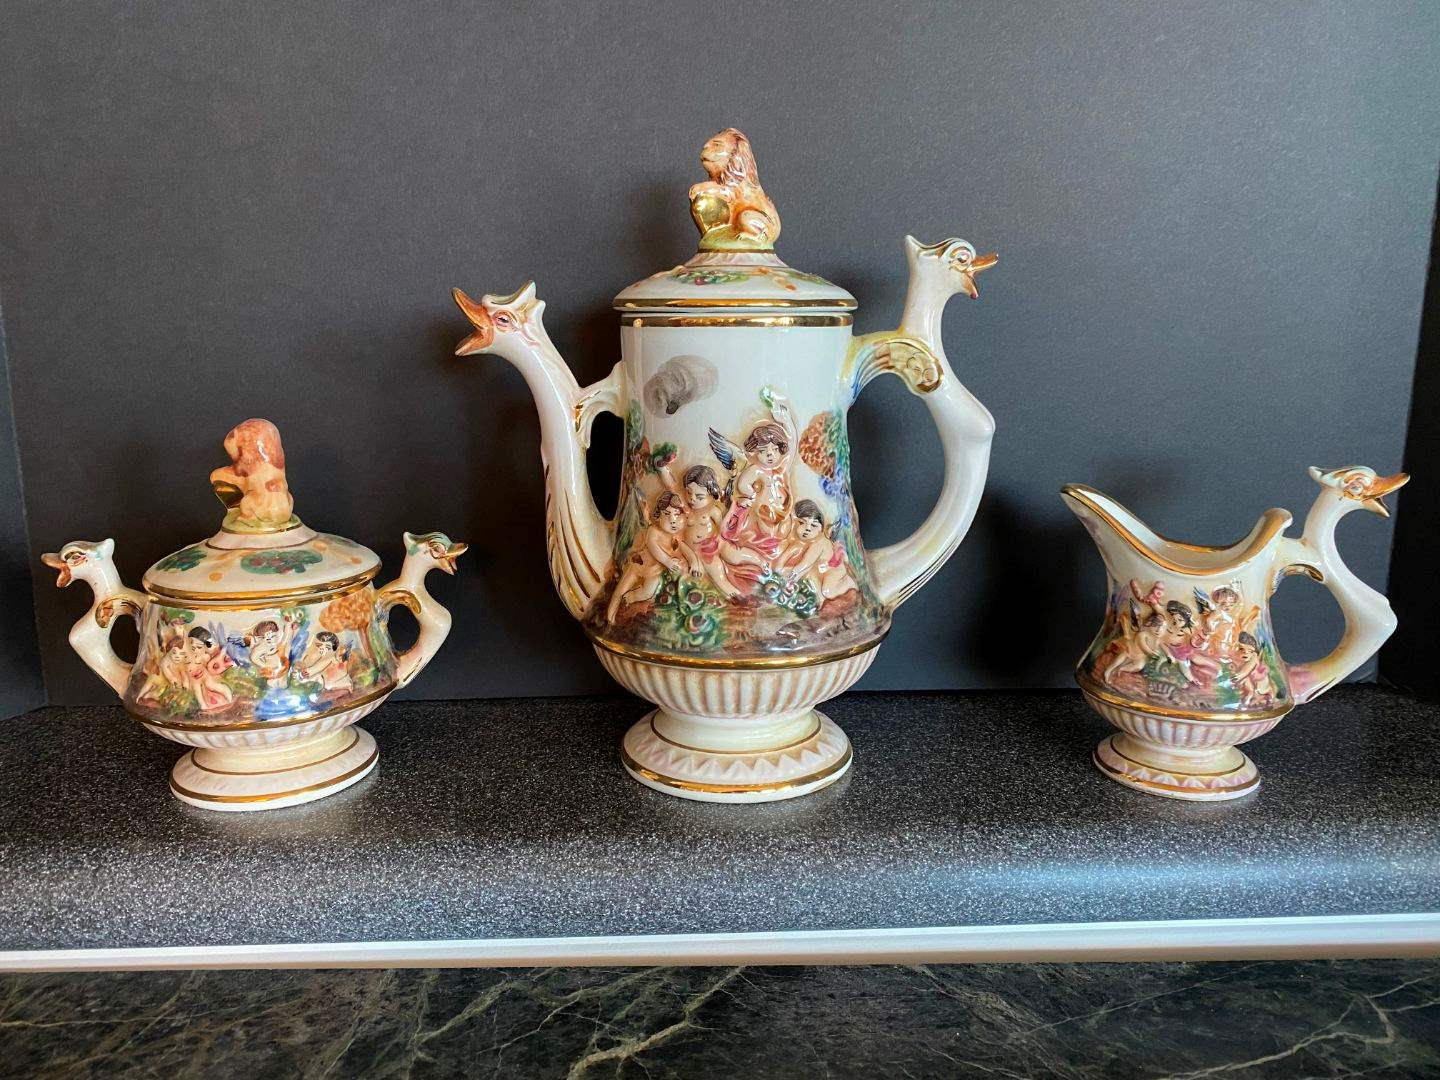 Lot # 85 - Nice Capodimonte Tea Serving Set (main image)